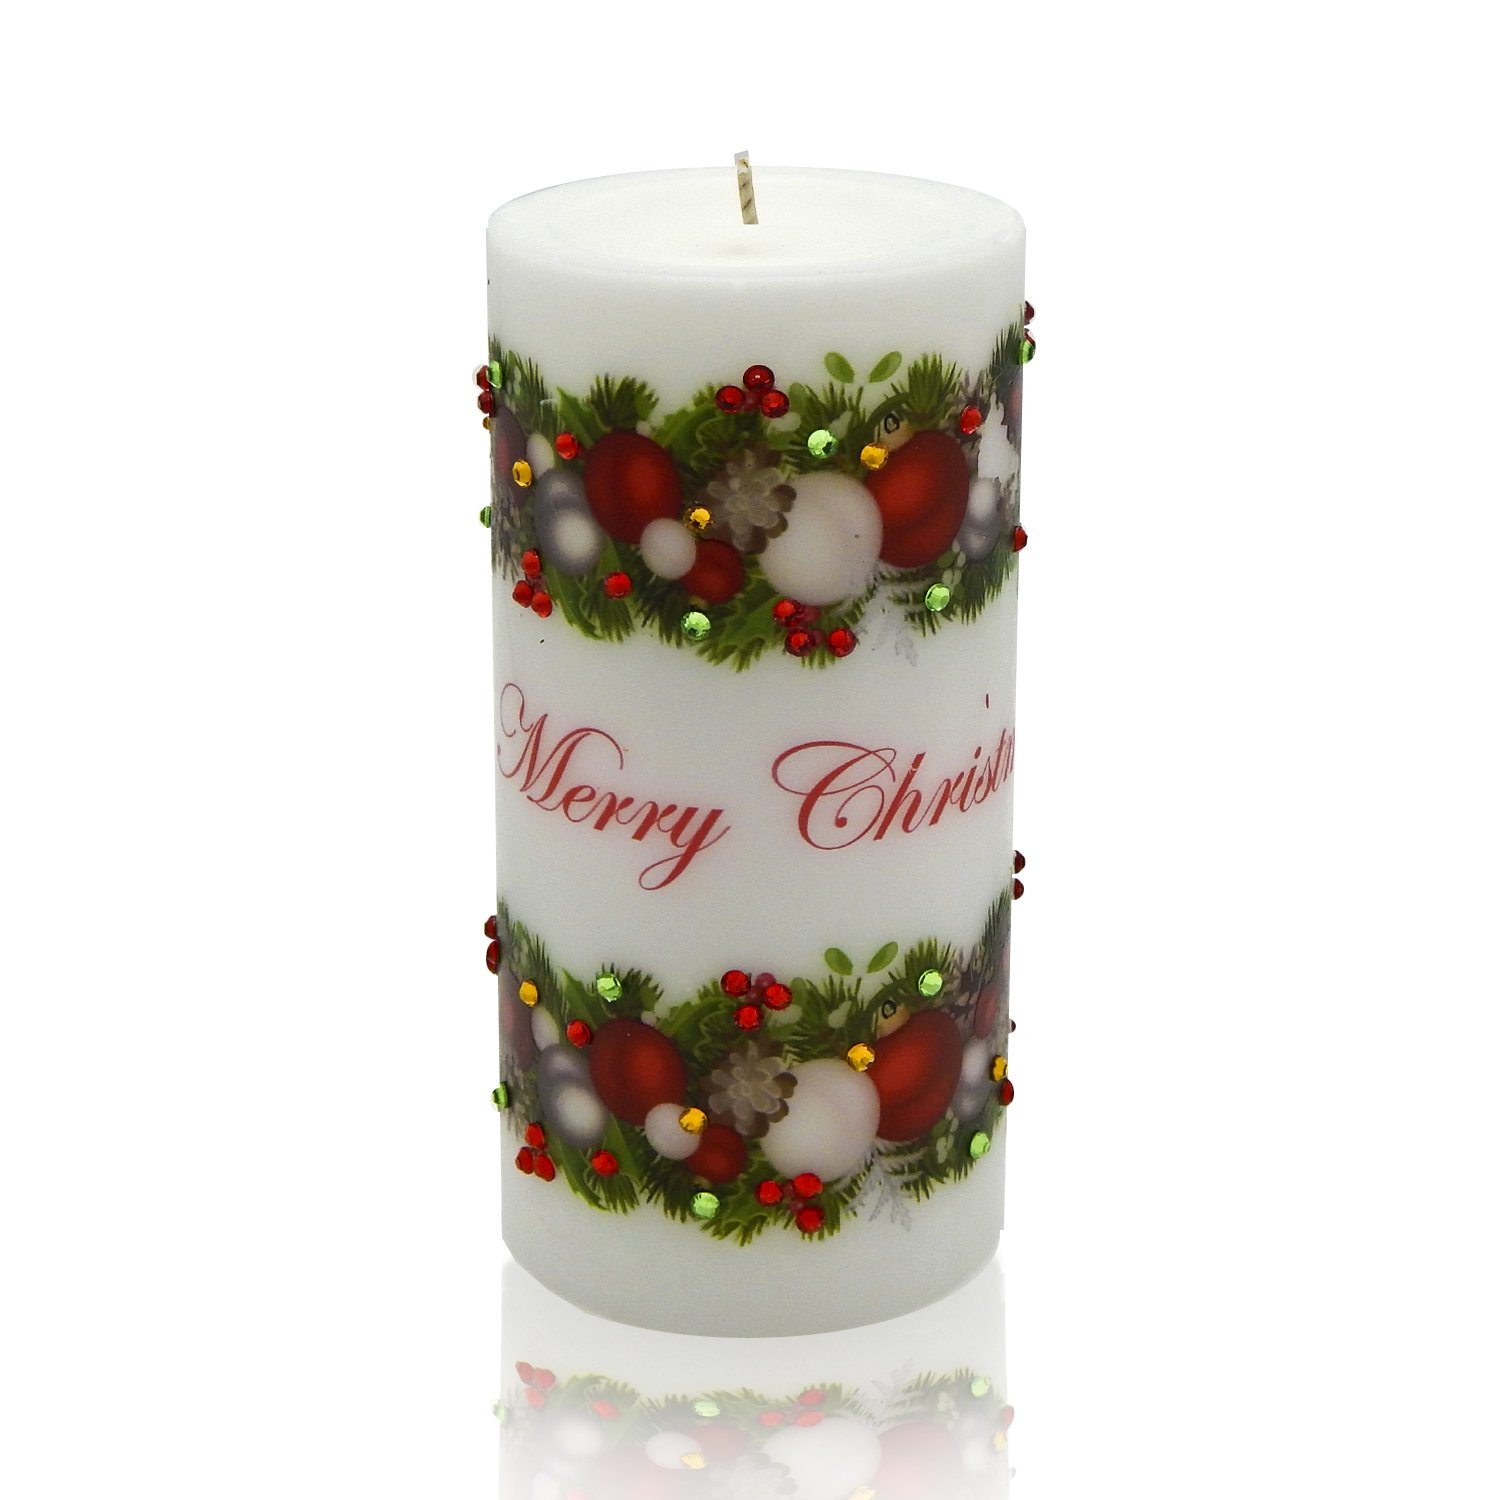 Sam & Wishbone Christmas Home Decoration Luxury Unscented Handmade Pillar Candle Gift, Ornament from the Happy Holidays Collection, White